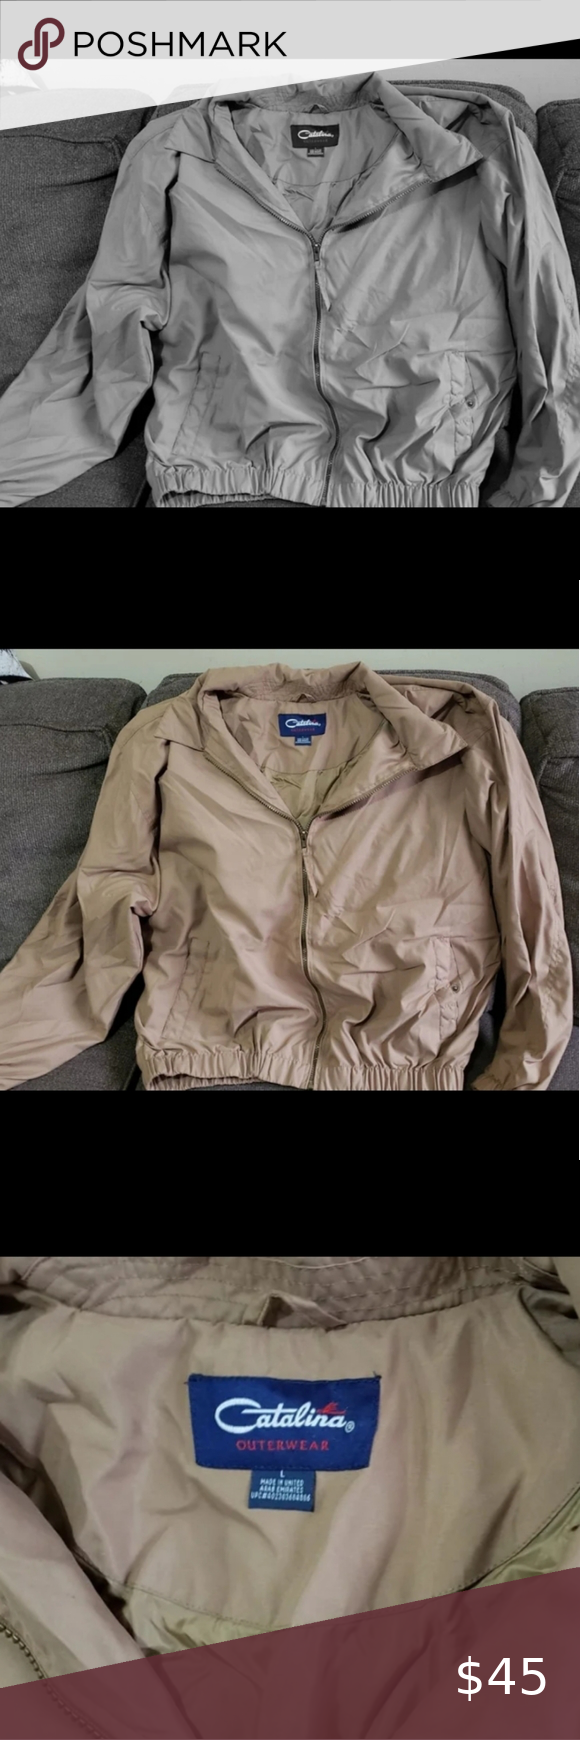 Vintage Catalina Outerwear Means Jacket Large Mens Zip Up Jackets Jackets Outerwear [ 1740 x 580 Pixel ]